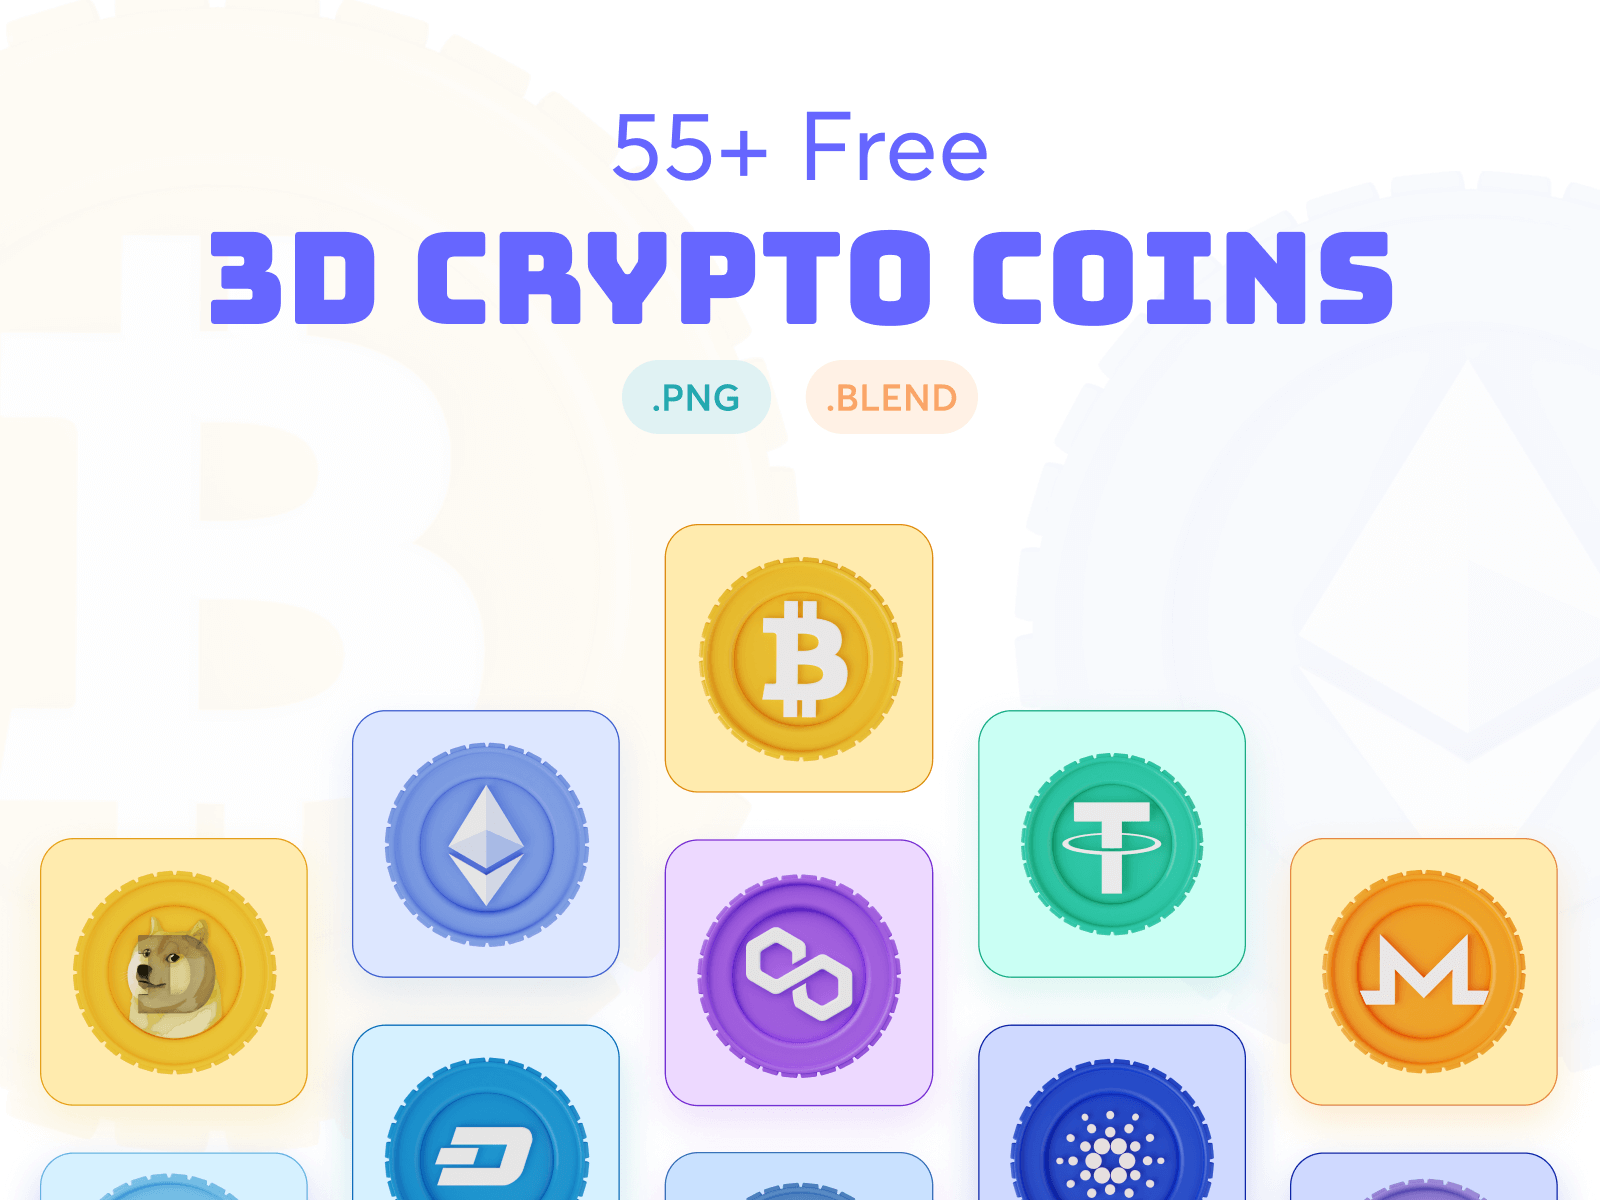 Cryptocurrency 3D Illustration Pack cover image